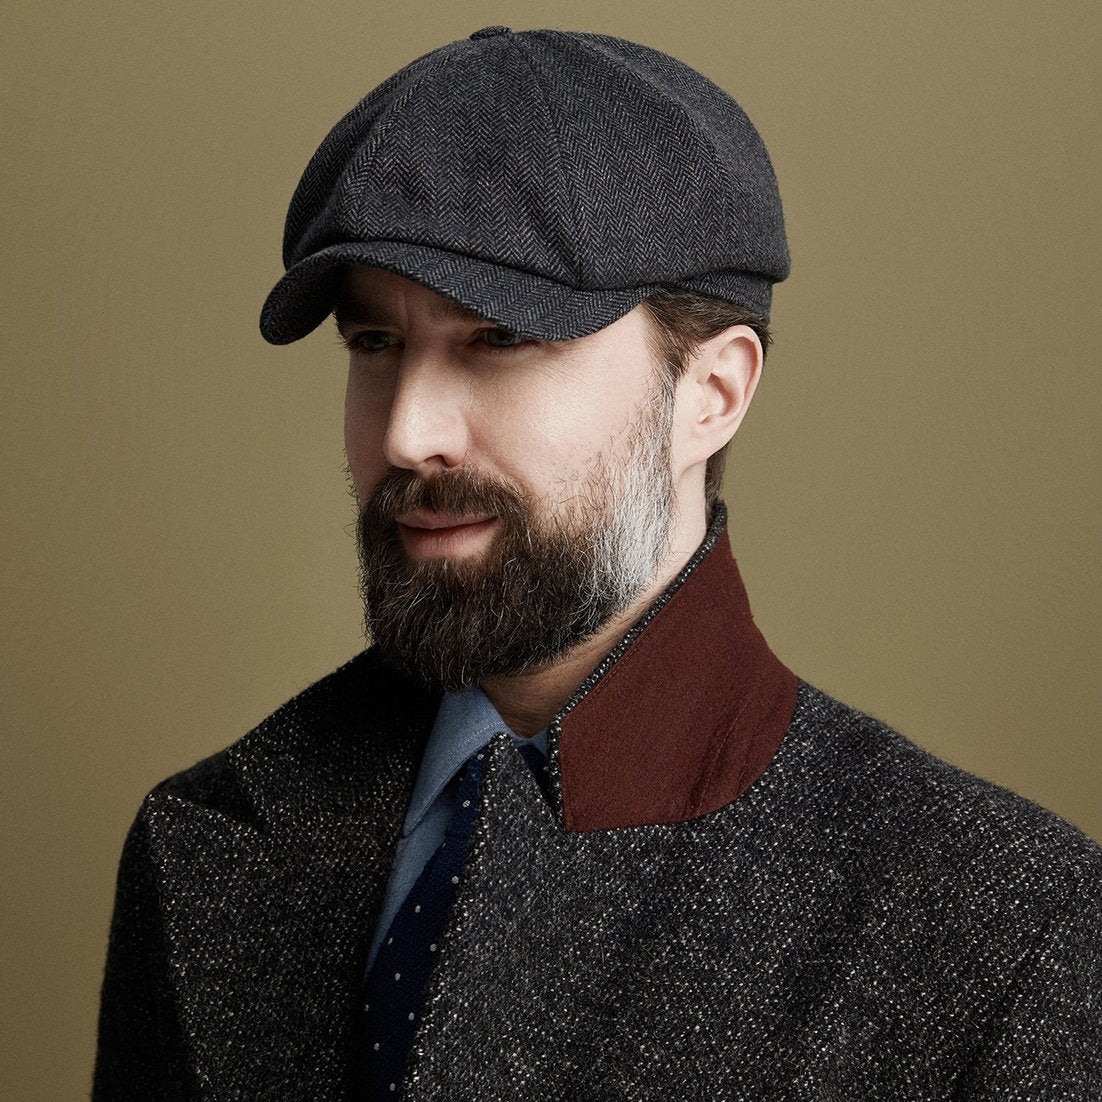 Cashmere Newsboy cap - Christmas Gifts - Lock & Co. Hatters London UK